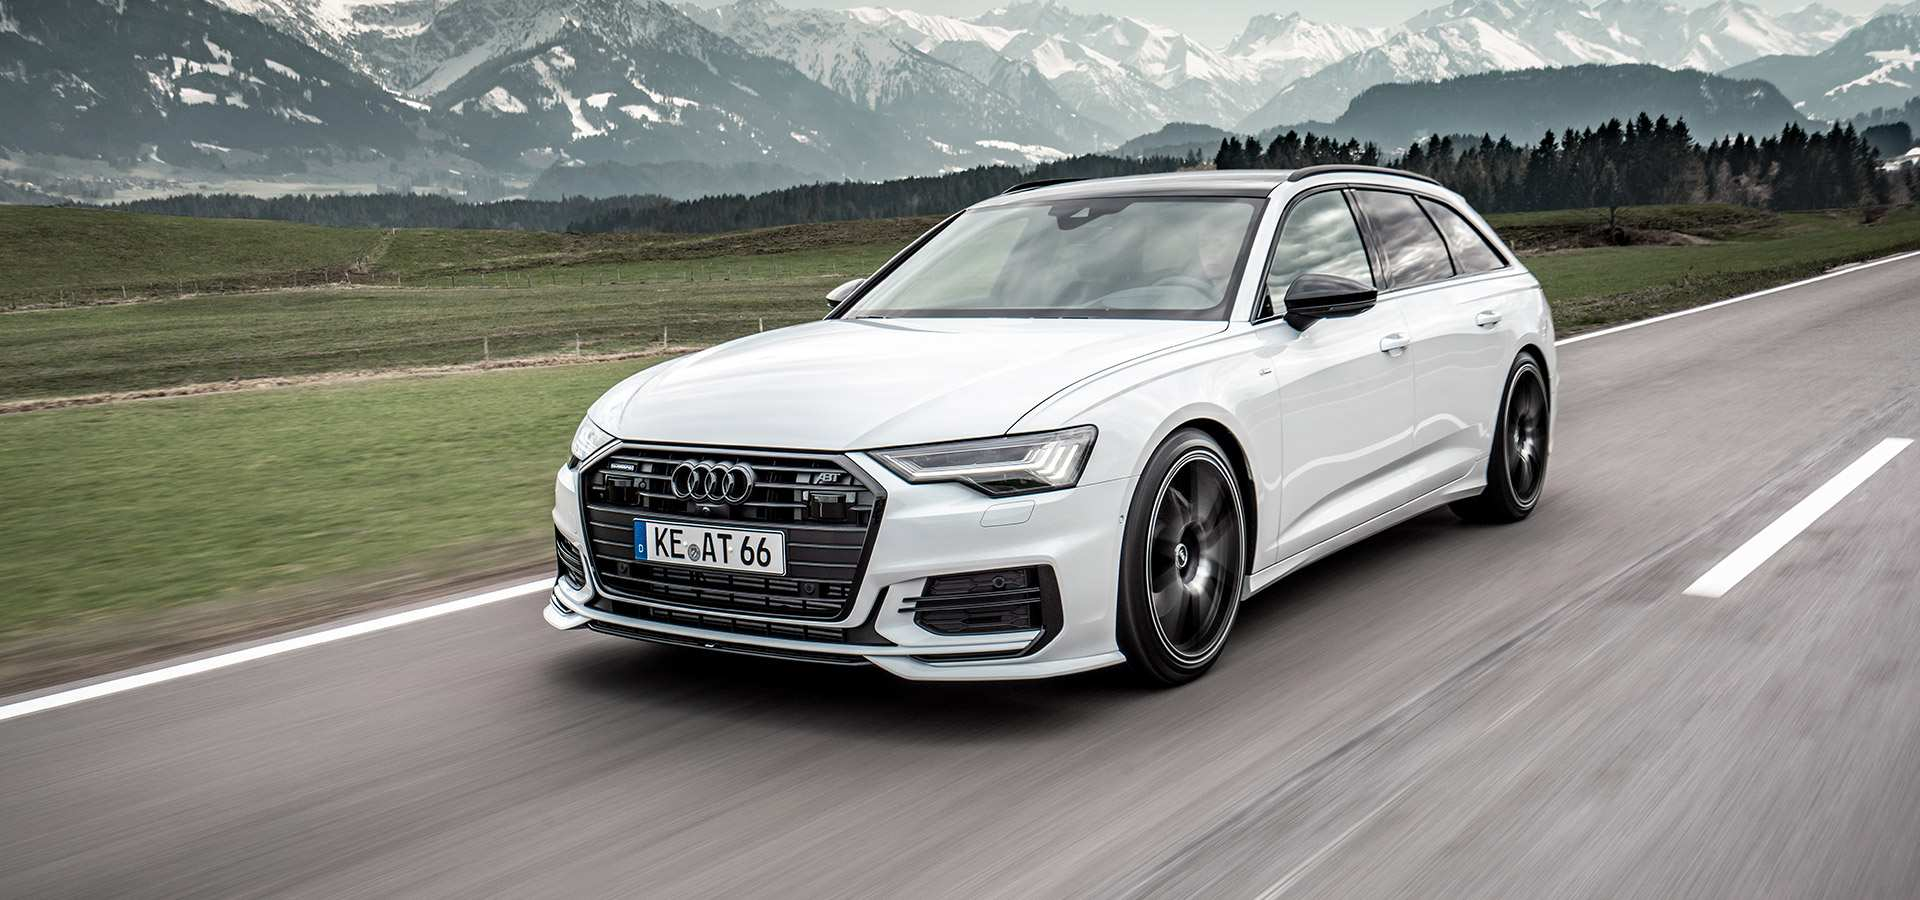 12 Best Linha Audi 2019 New Review Engine